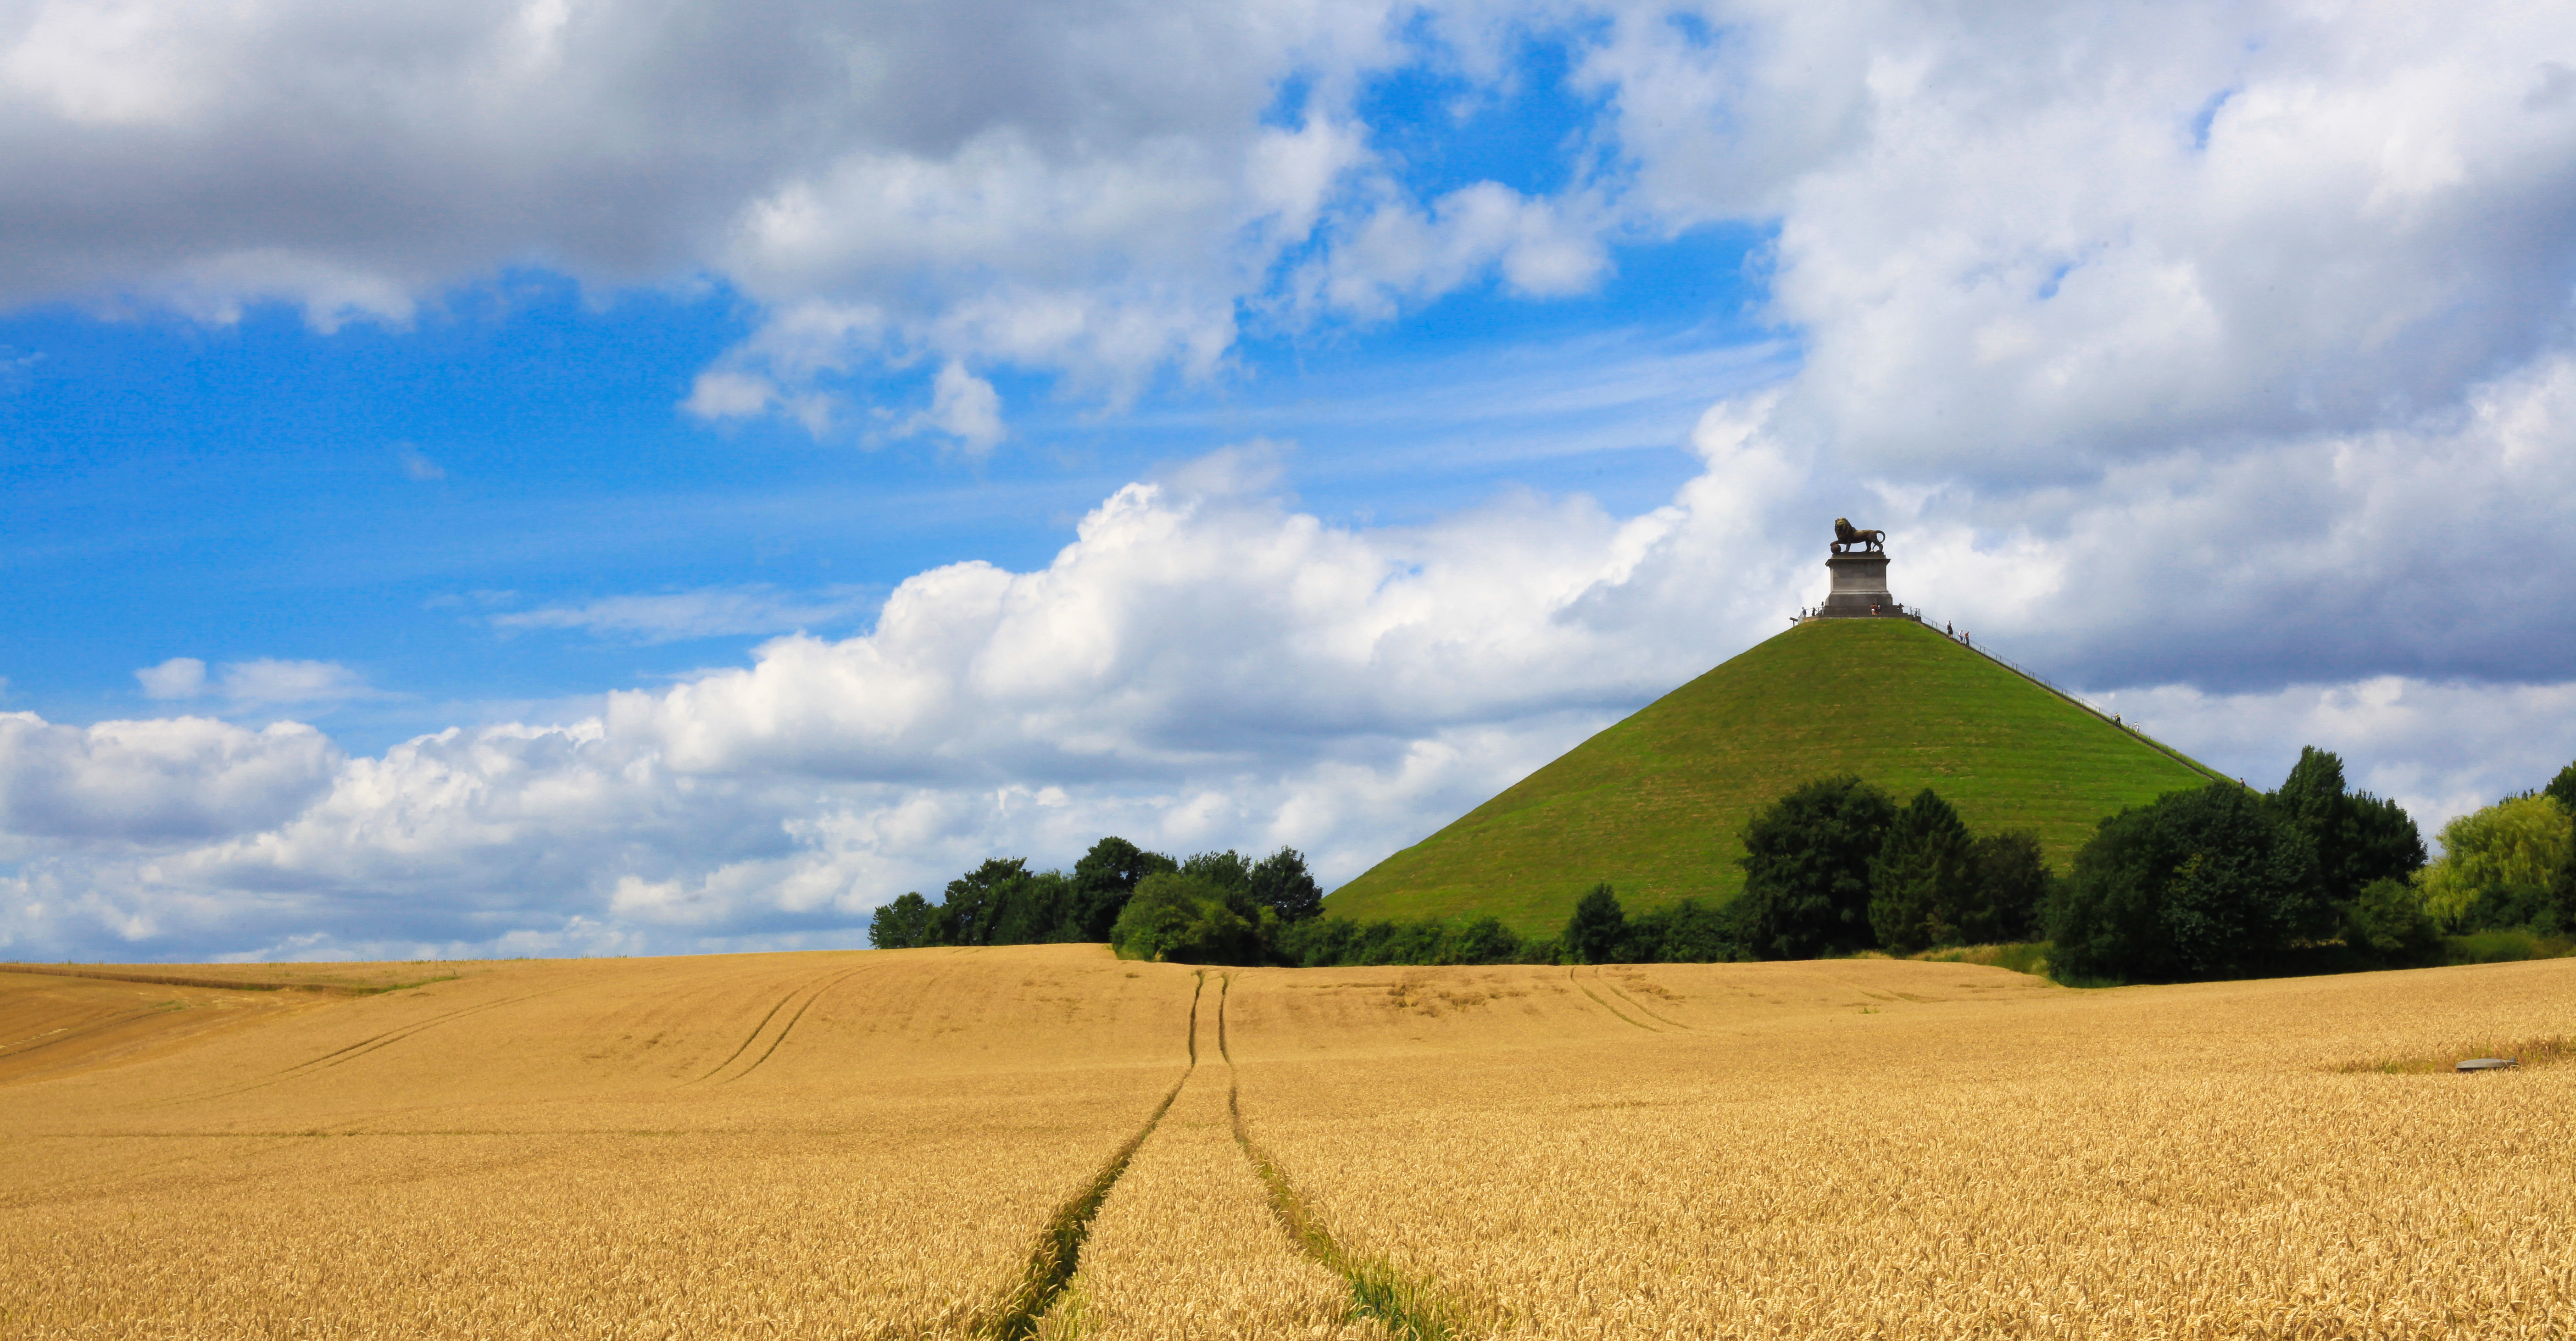 Wheat Fields of Butte Du Lion, Waterloo, Belgium